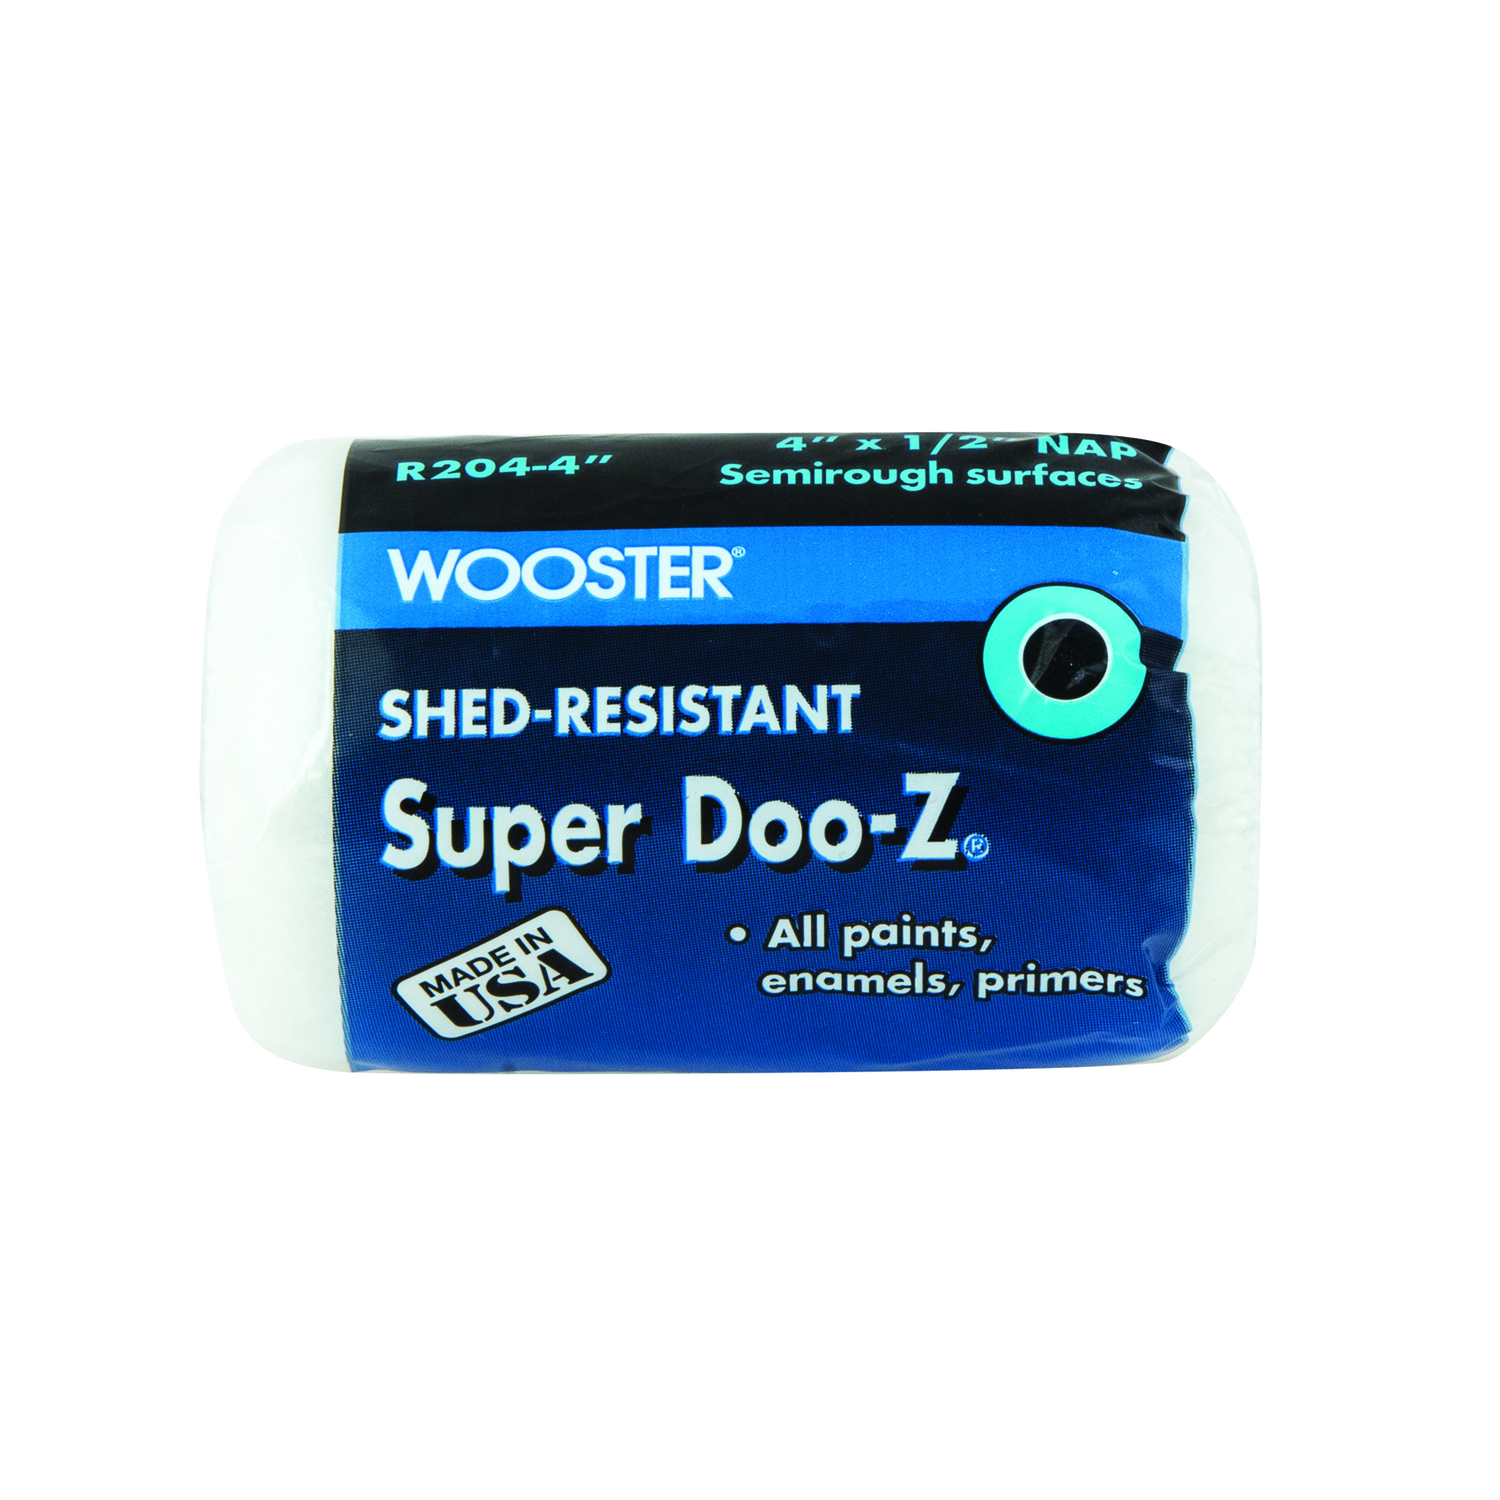 Wooster  Super Doo-Z  Fabric  1/2 in.  x 4 in. W For Semi-Rough Surfaces Paint Roller Cover  1 pk